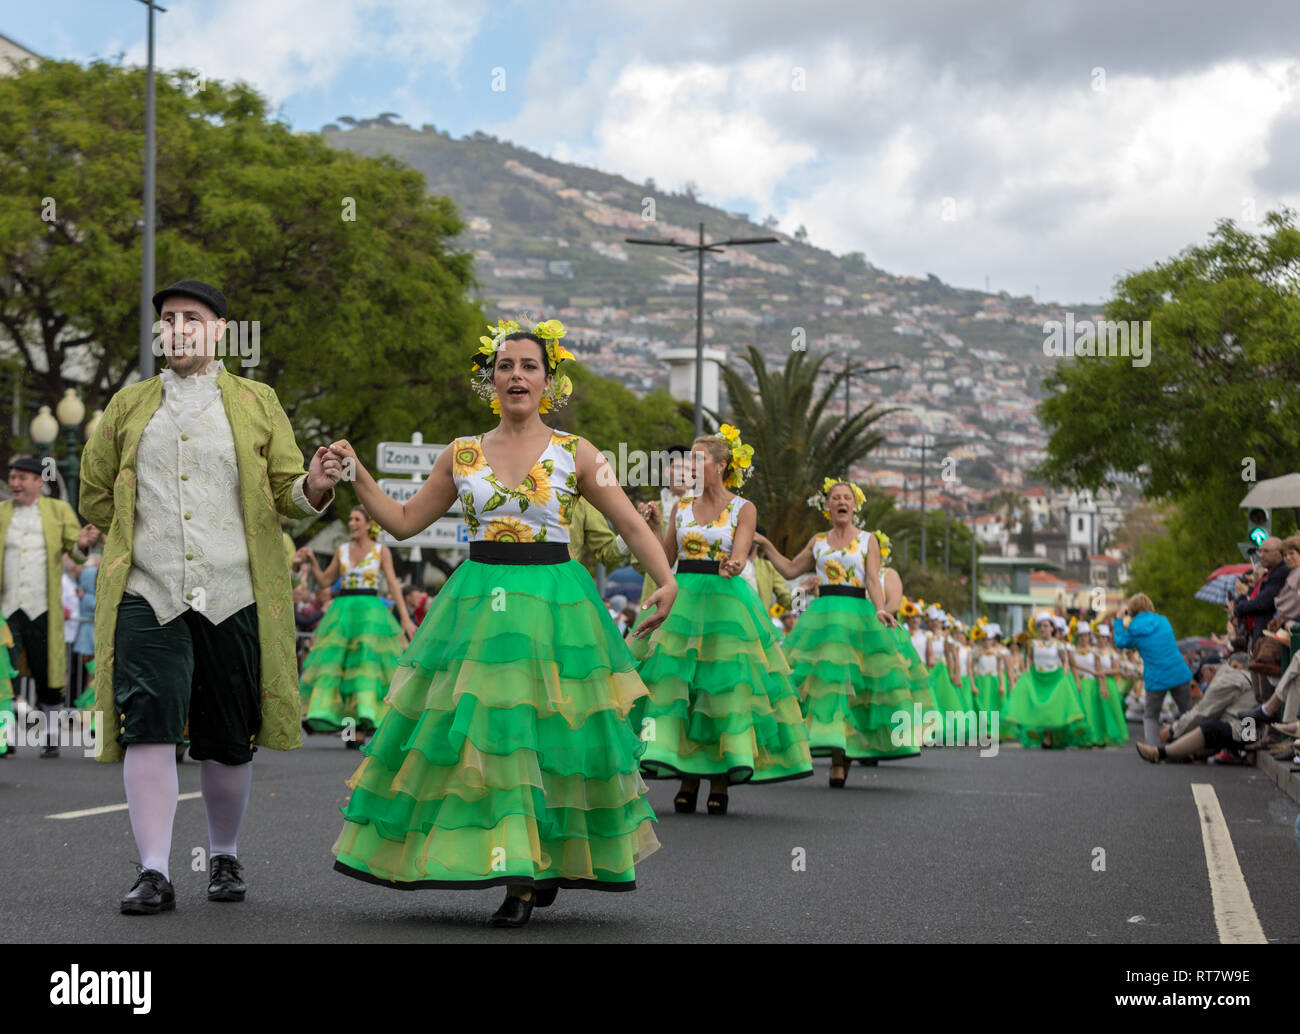 Funchal; Madeira; Portugal - April 22; 2018: a group of people  in colorful dresses with sunflowers motifs are dancing at Madeira Flower Festival Para - Stock Image